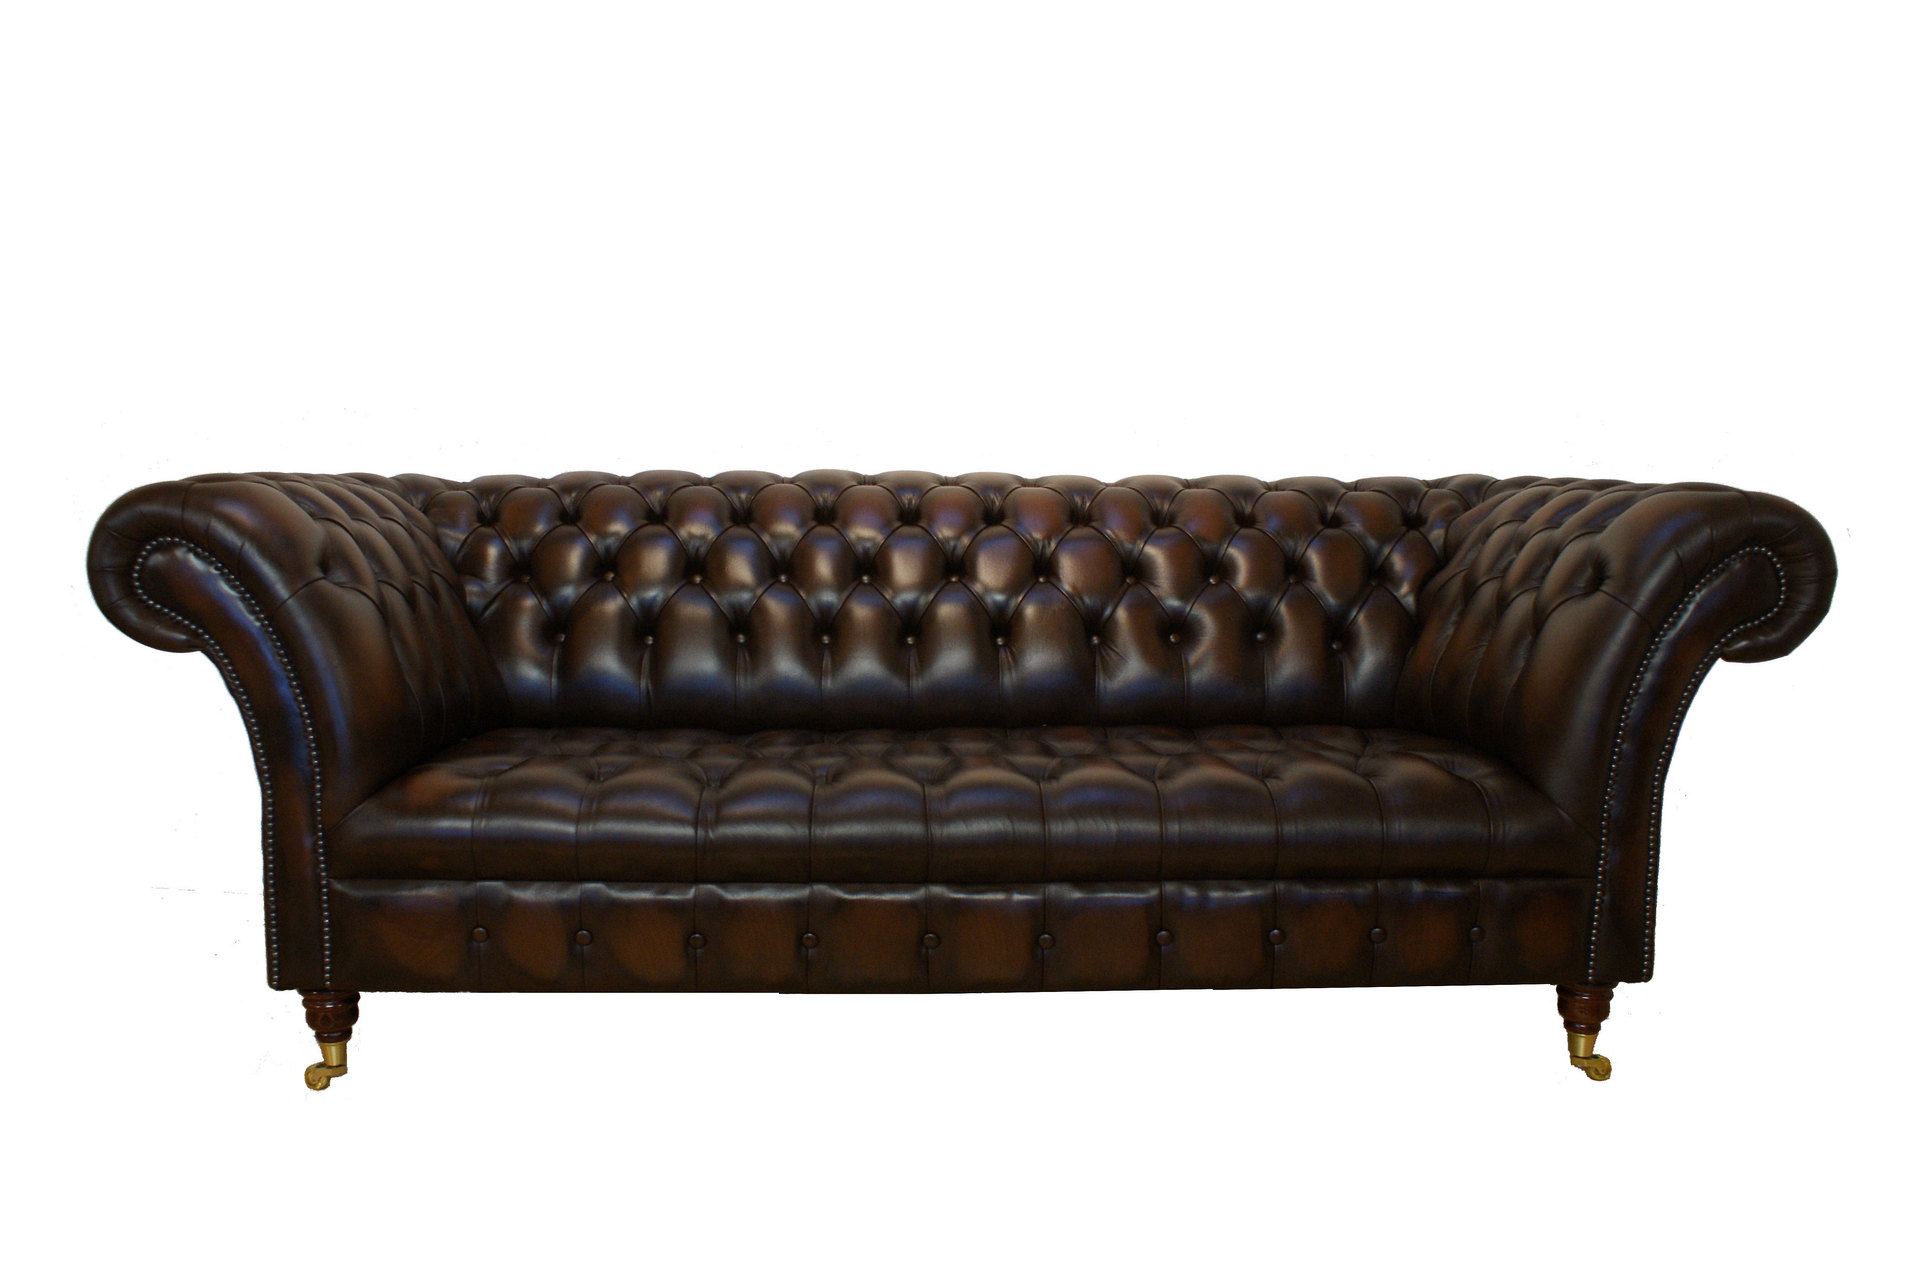 Chesterfield Sofa Chesterfield Sofas: Guest Post By Arcadian Lighting